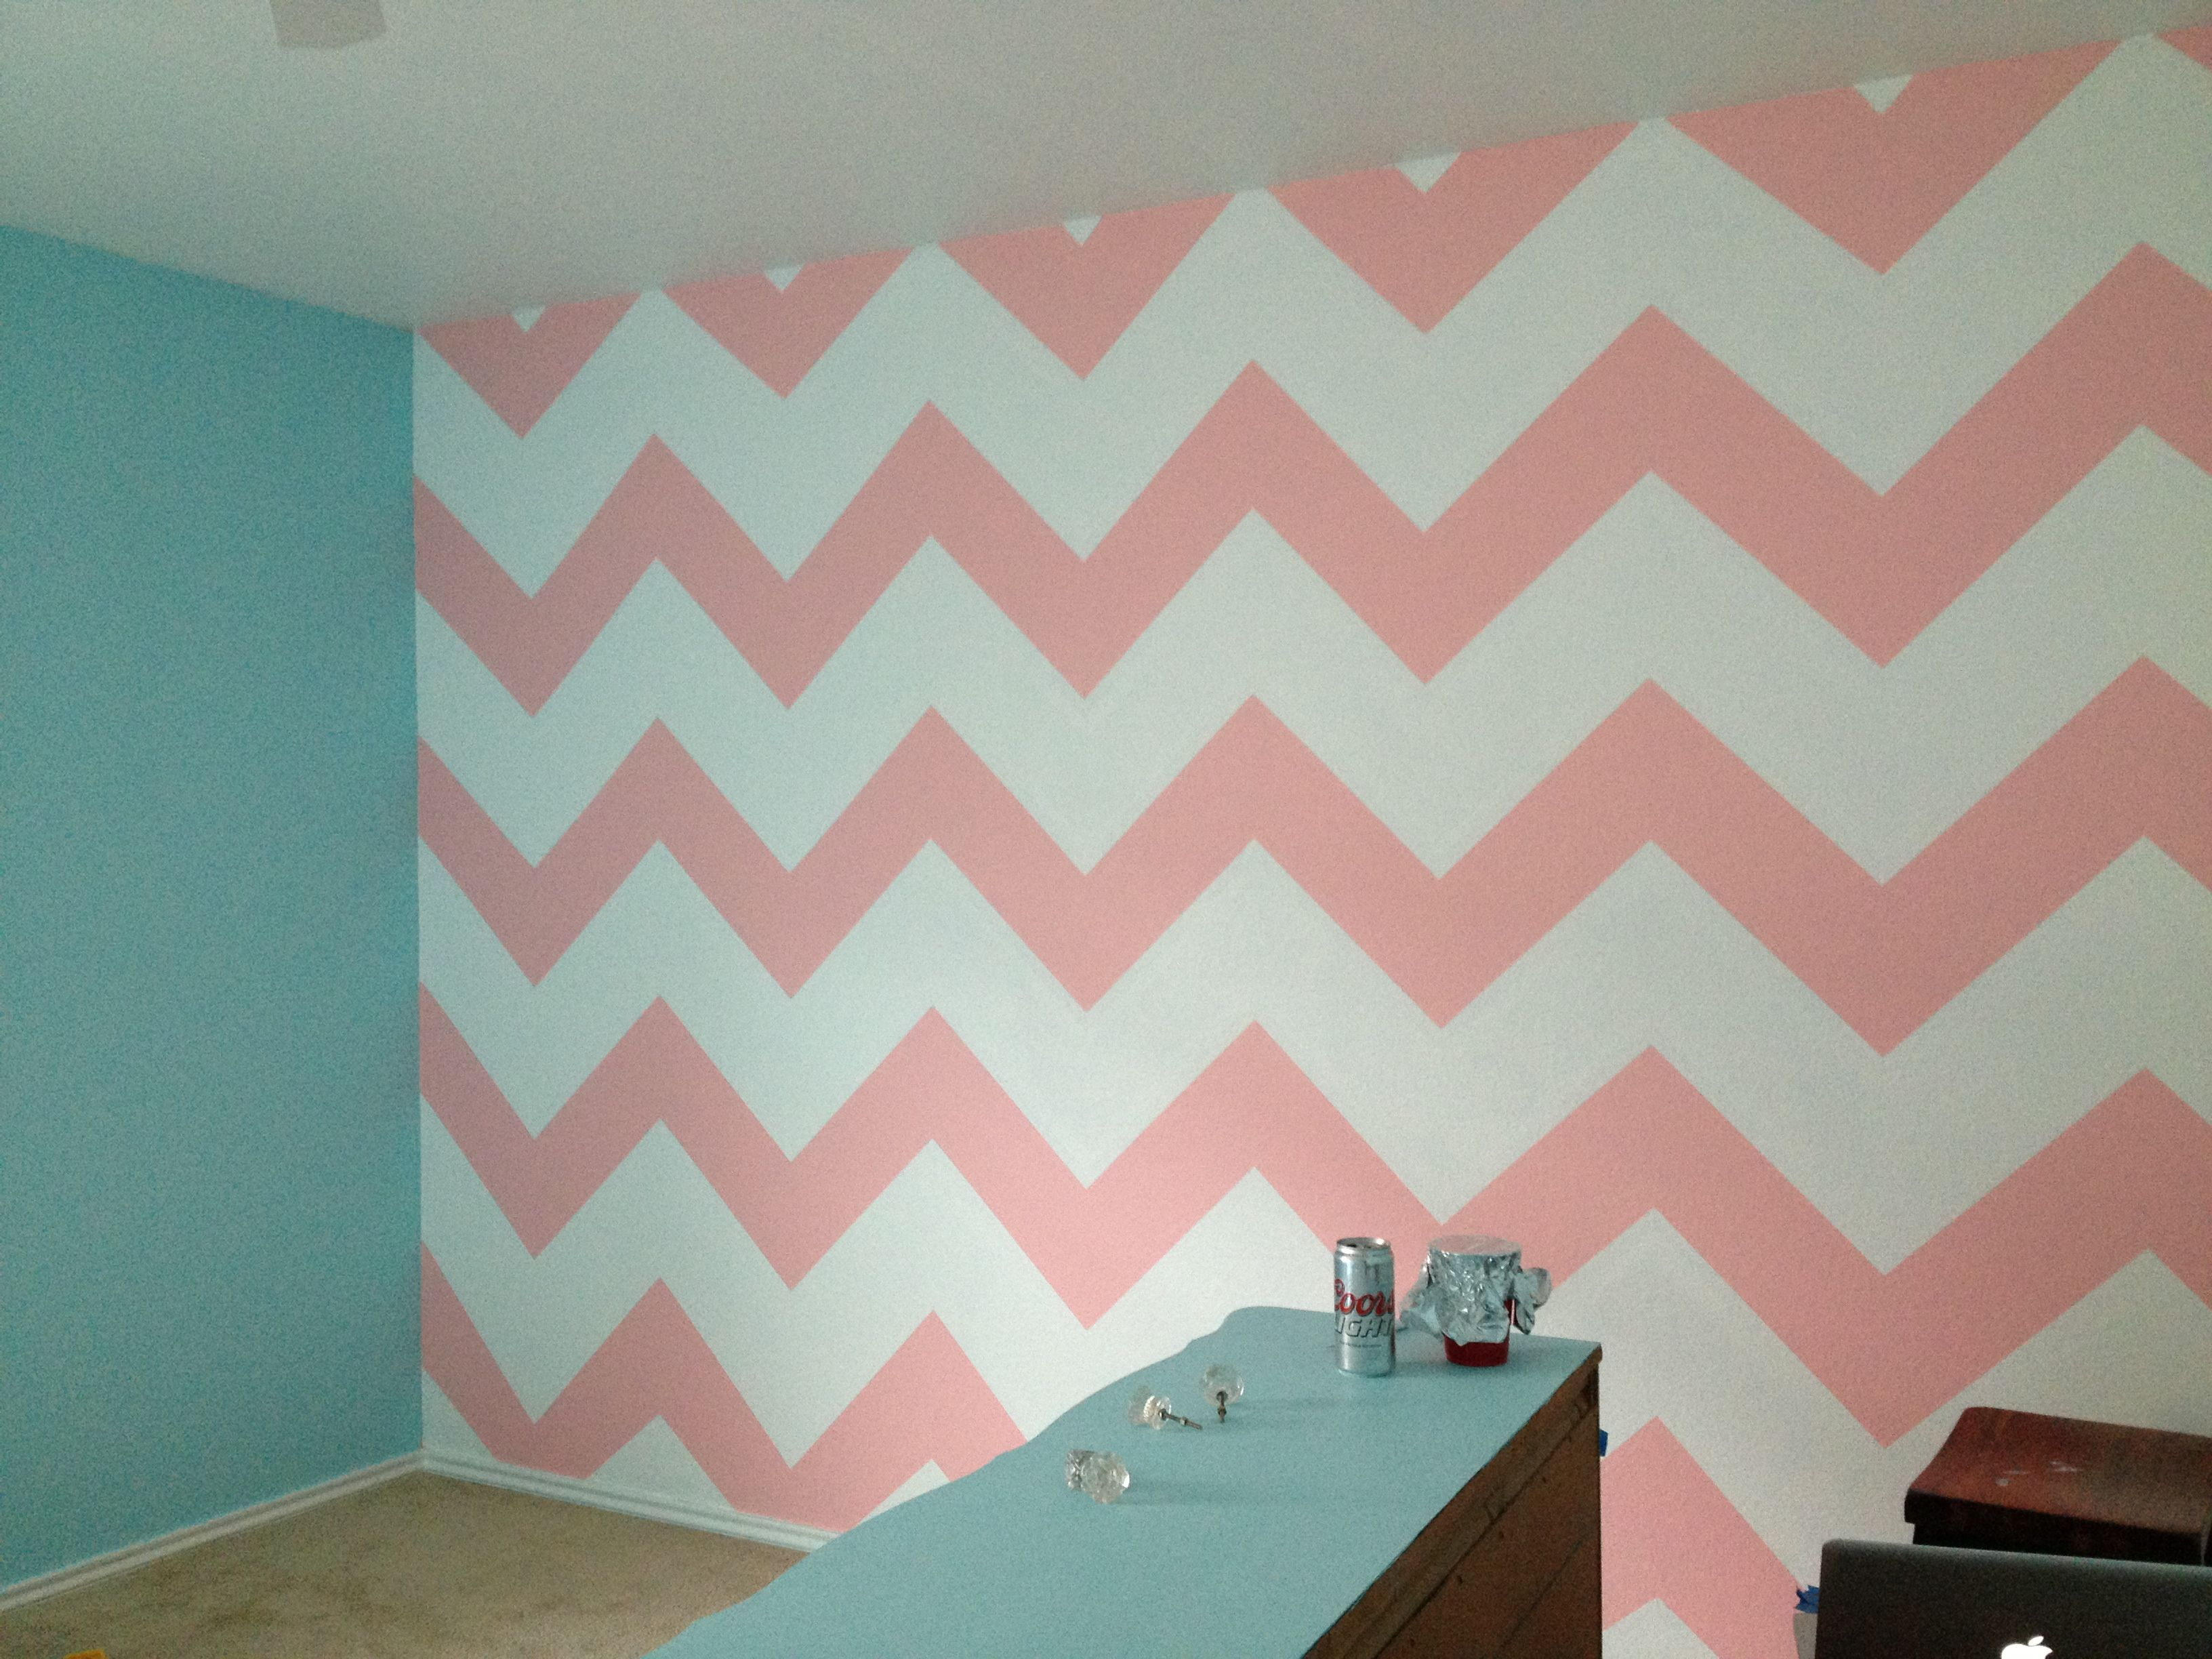 Chevron wall fur nursery for sweet caroline for Chevron template for walls